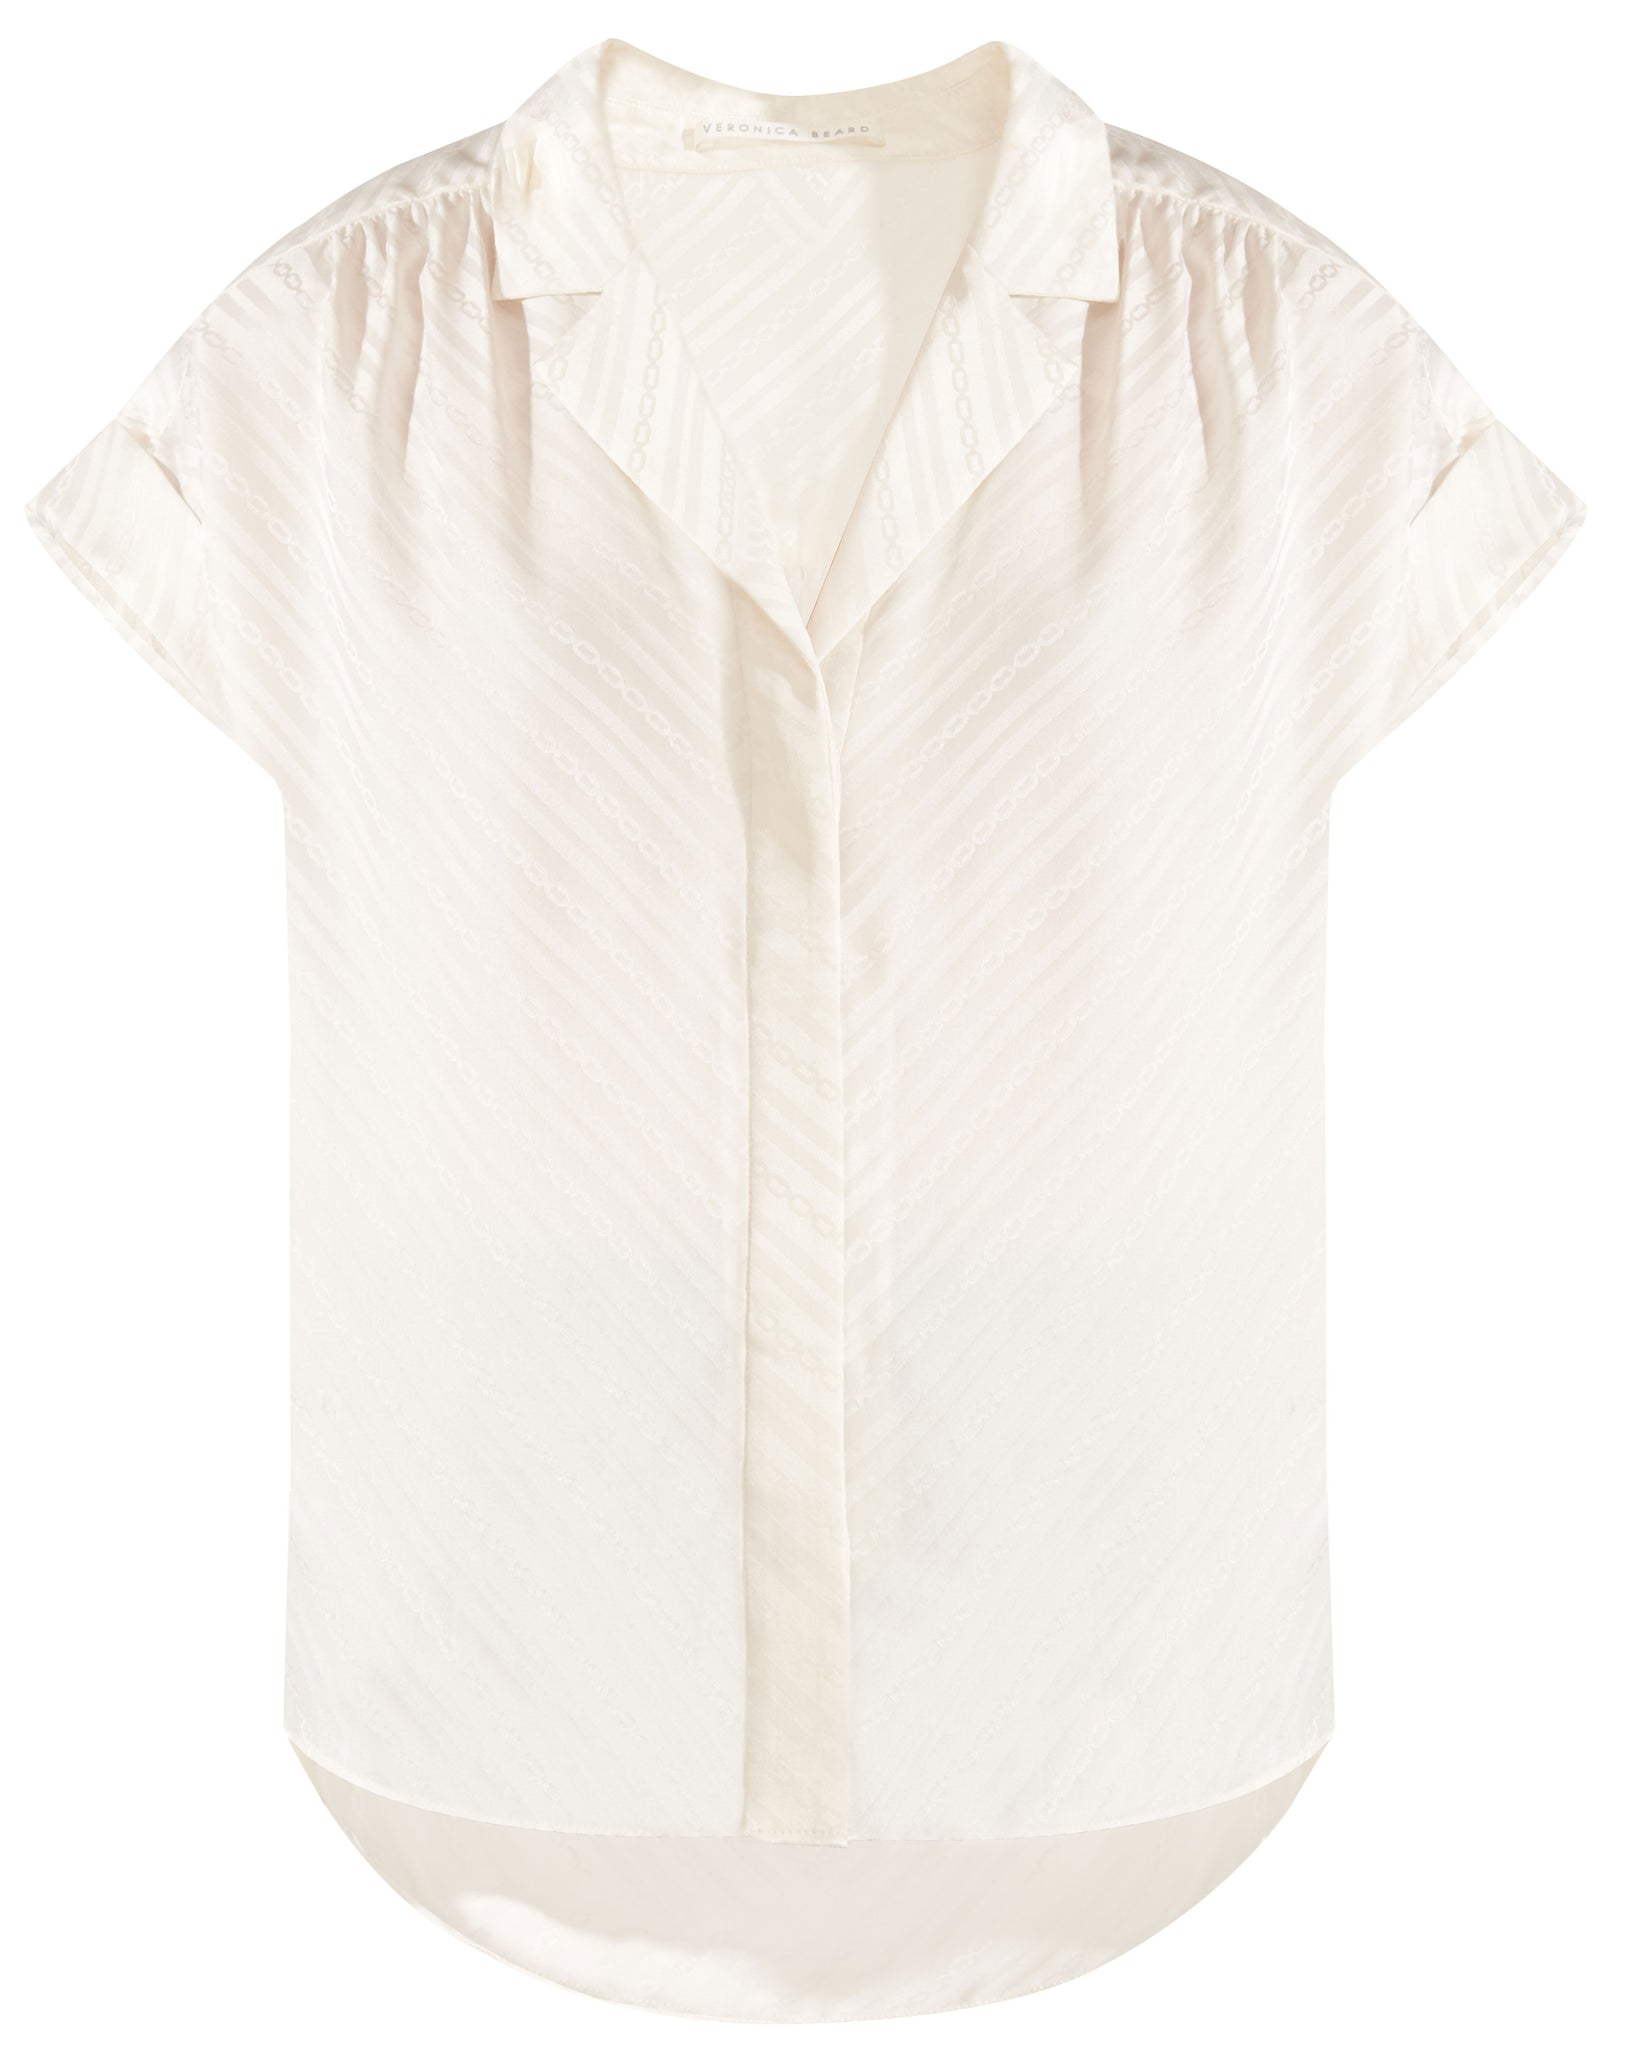 Merci Blouse - White